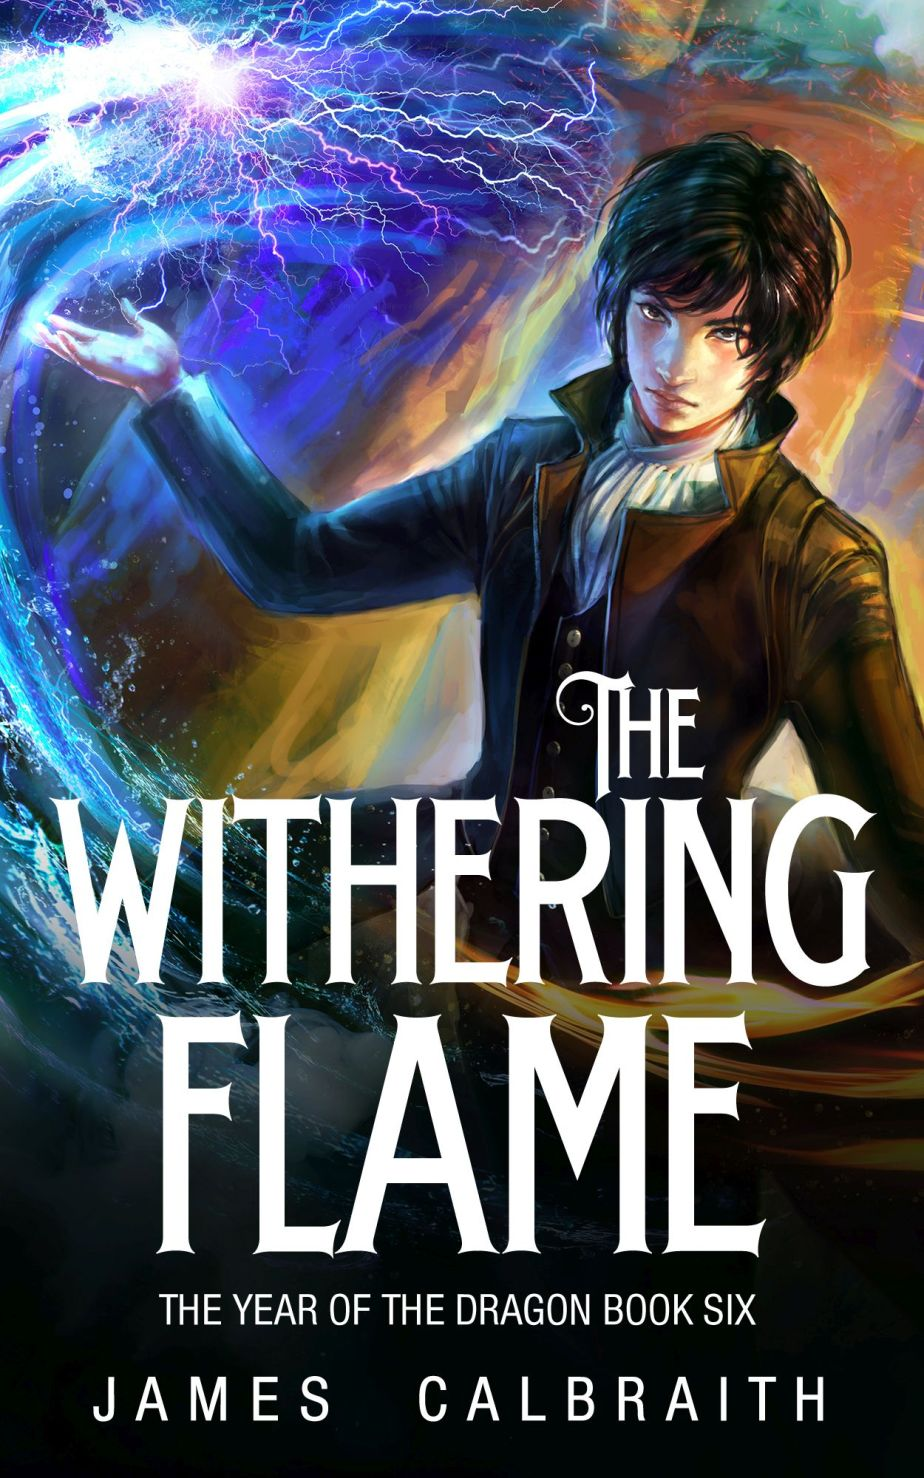 The Withering Flame Amazon Pre-Order is Go!